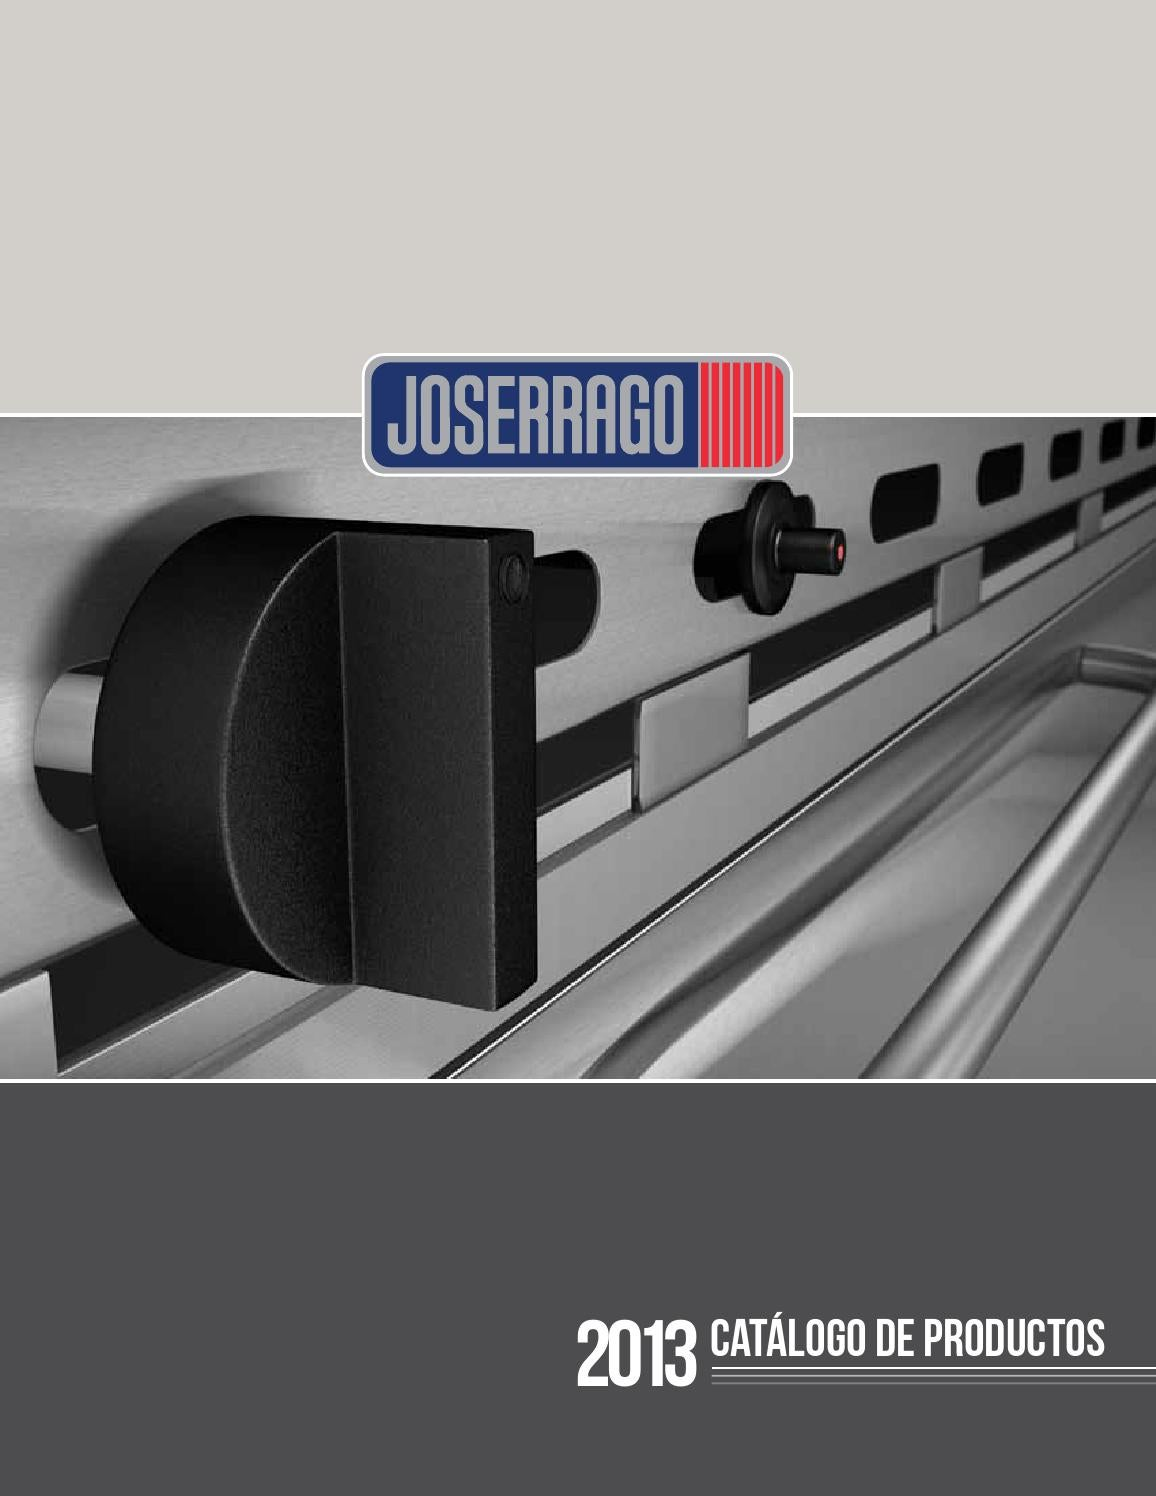 Catalogo joserrago by sinsa institucional issuu for Cocinas industriales bogota